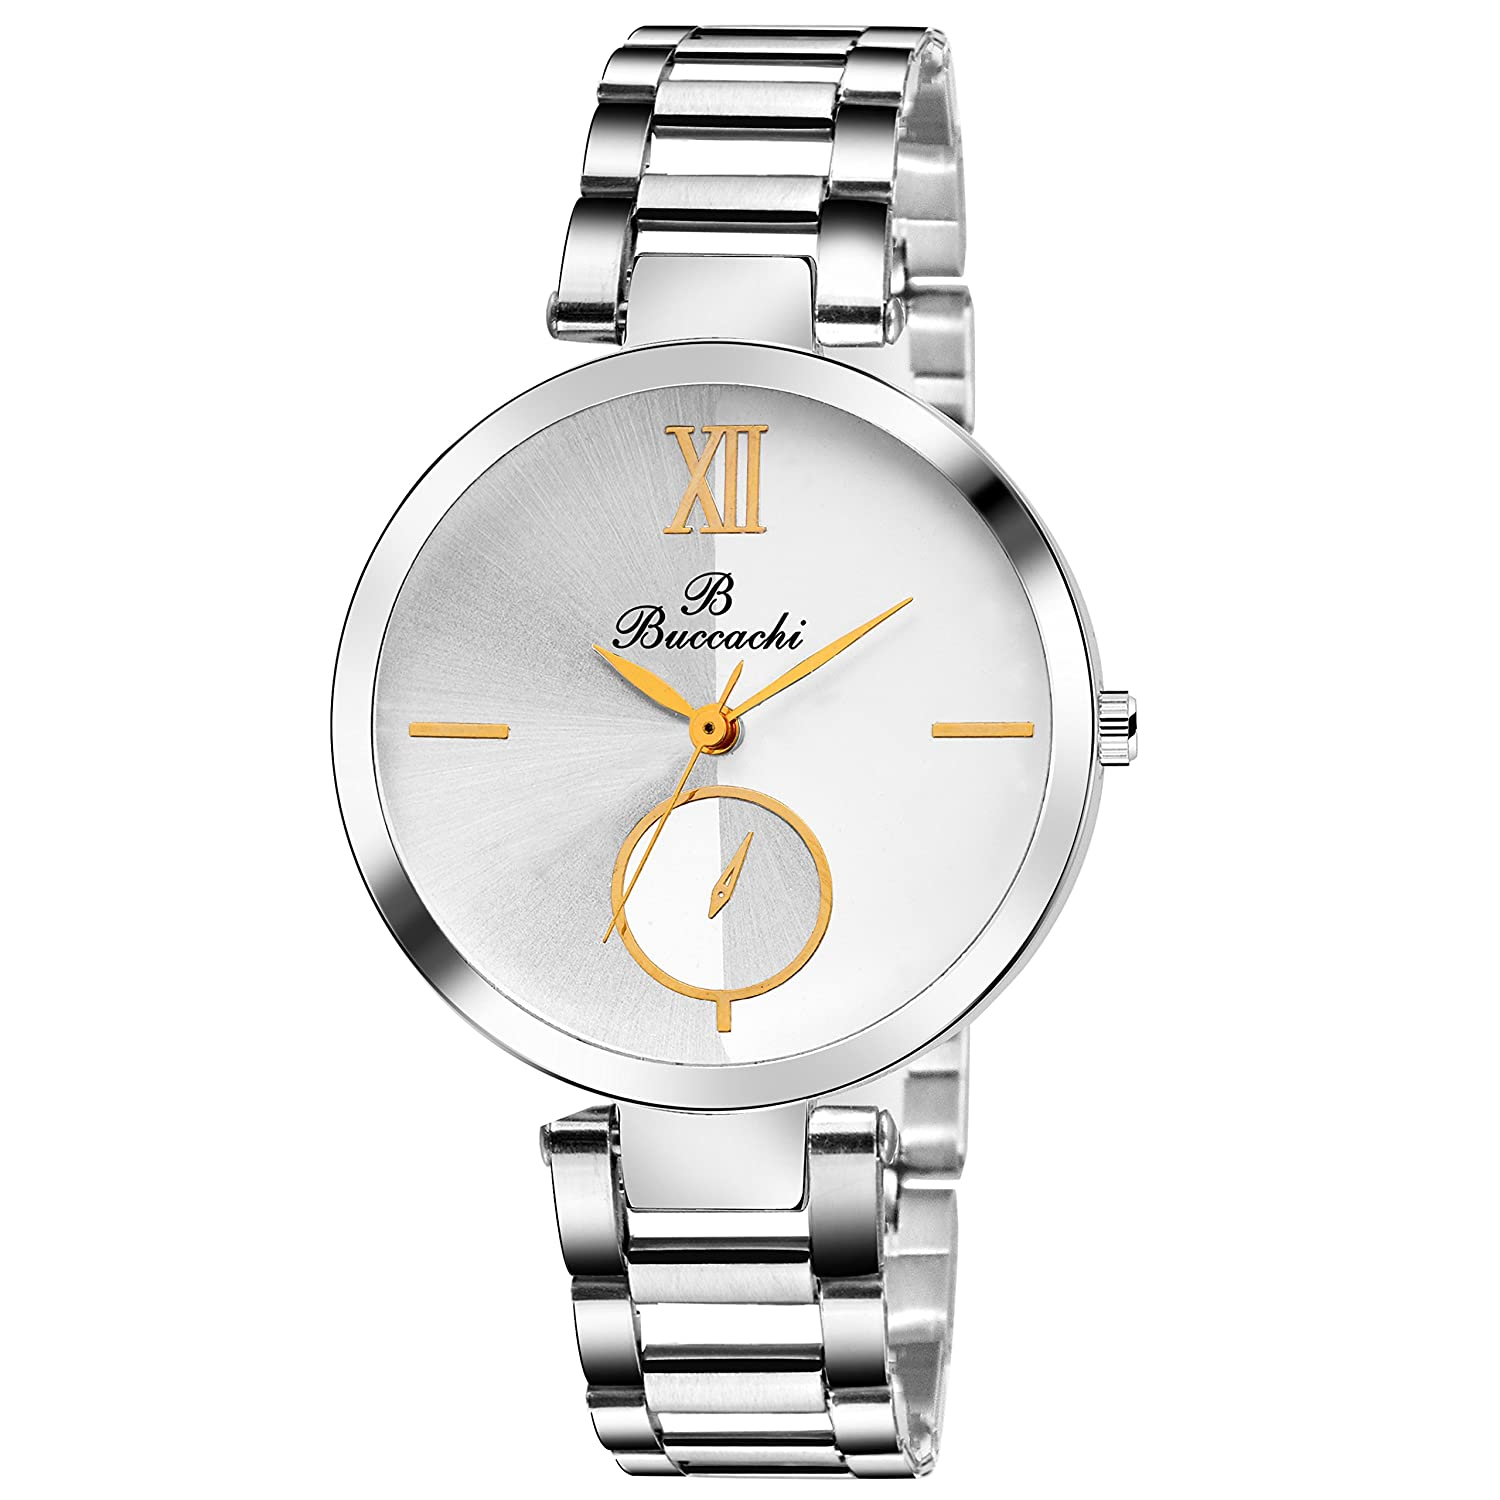 Buccachi Analouge White Dial Watches Water Resistant Silver Color Strap Watches for Women/Ladies/Girls B-L1044-WT-CH